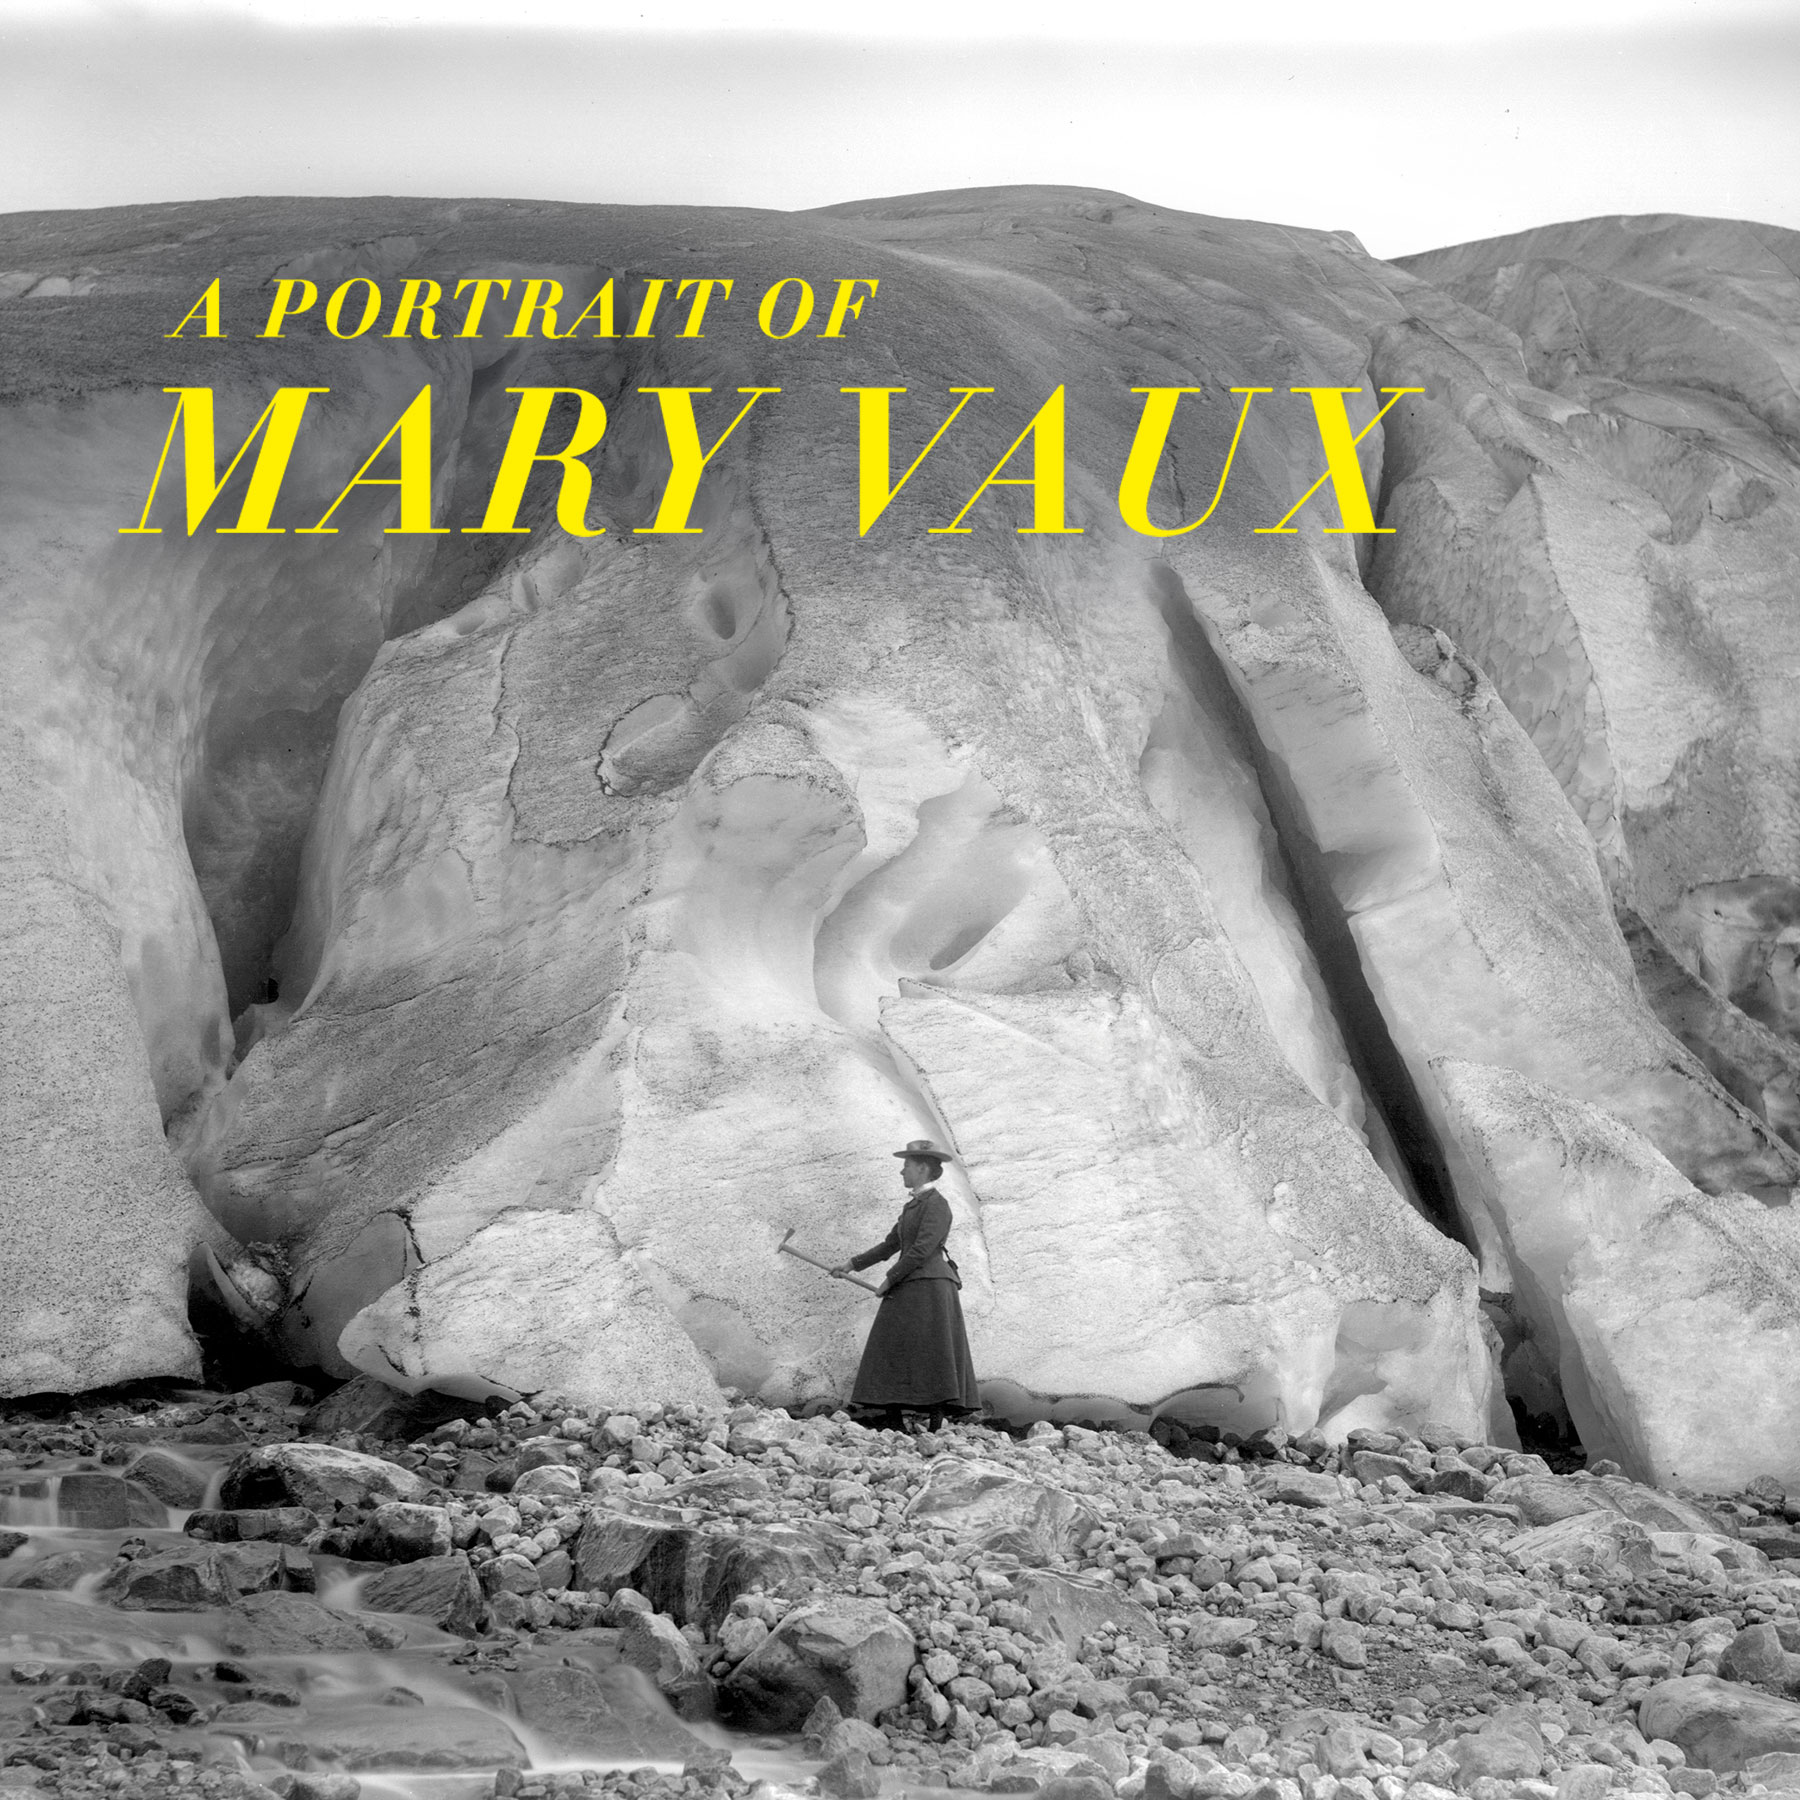 A Portrait of Mary Vaux